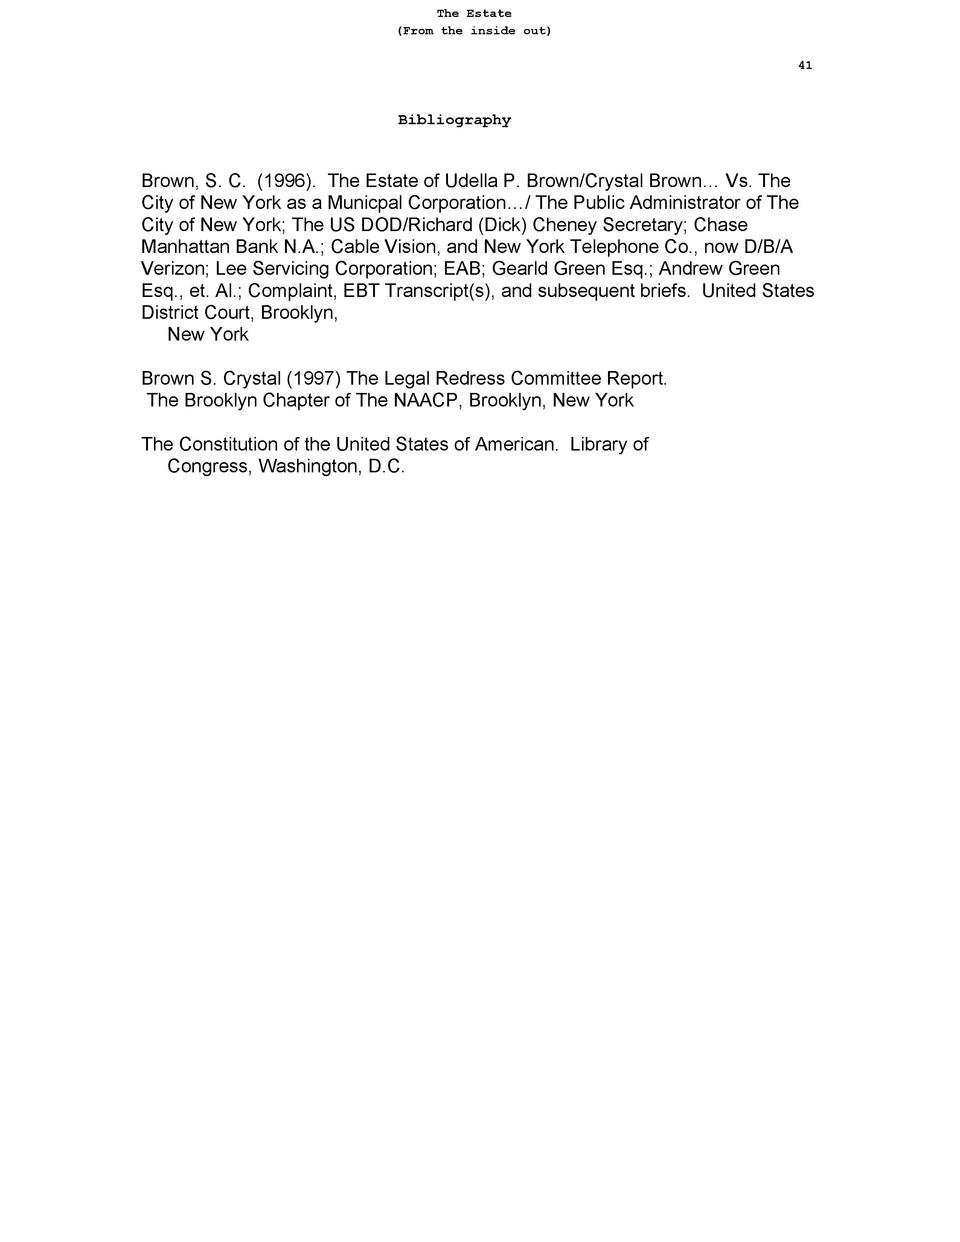 The Estate  From the inside out  41  Bibliography  Brown, S. C.  1996 . The Estate of Udella P. Brown Crystal Brown    Vs....